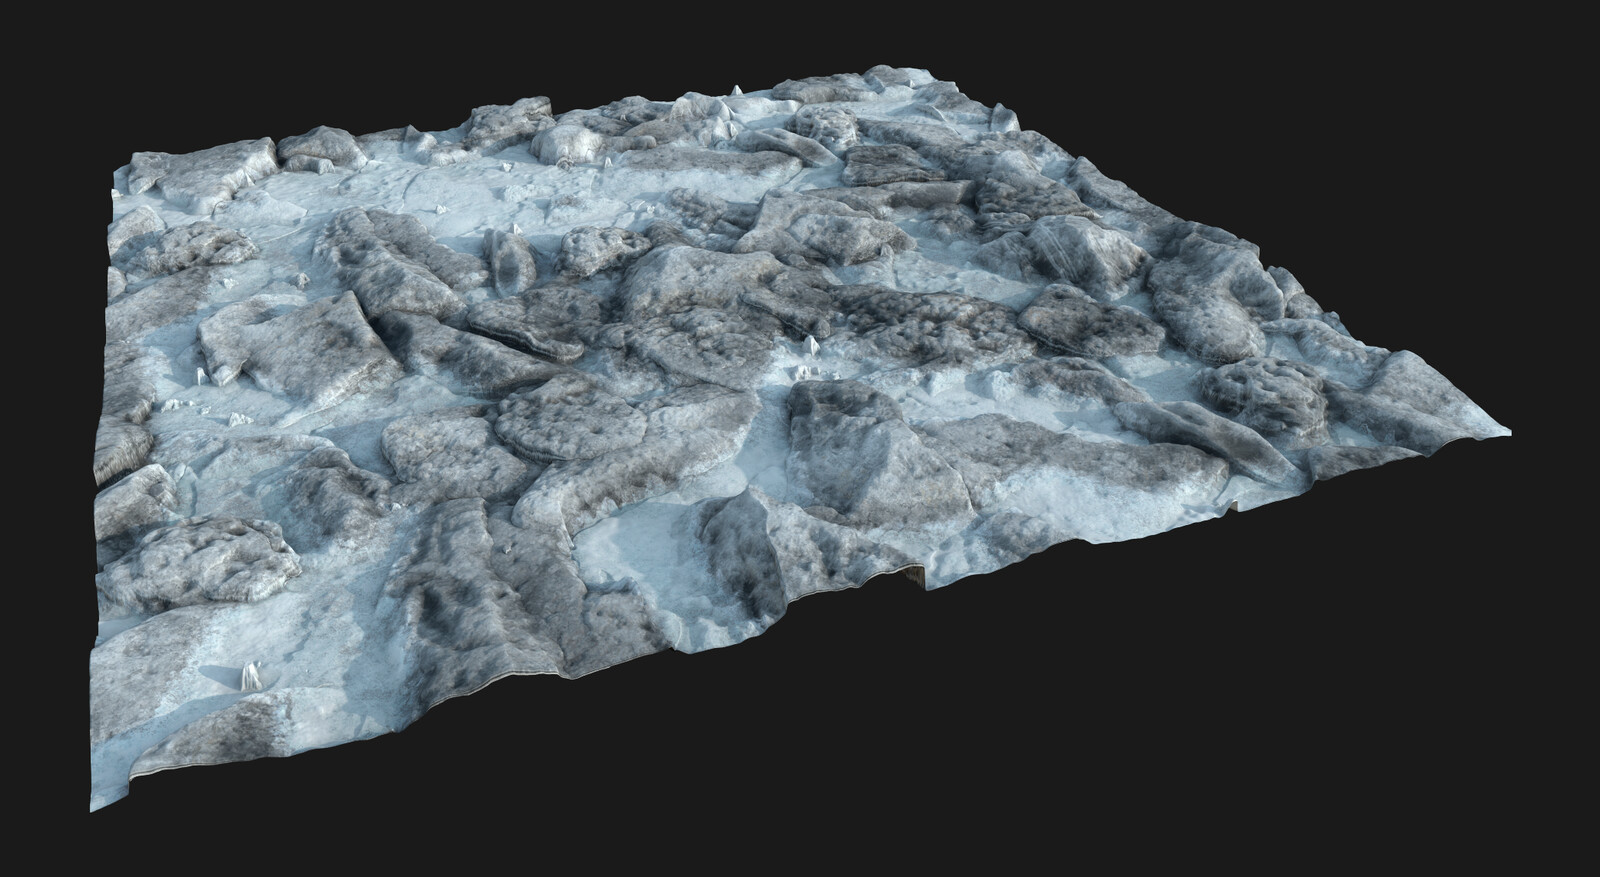 scan-based rock-material